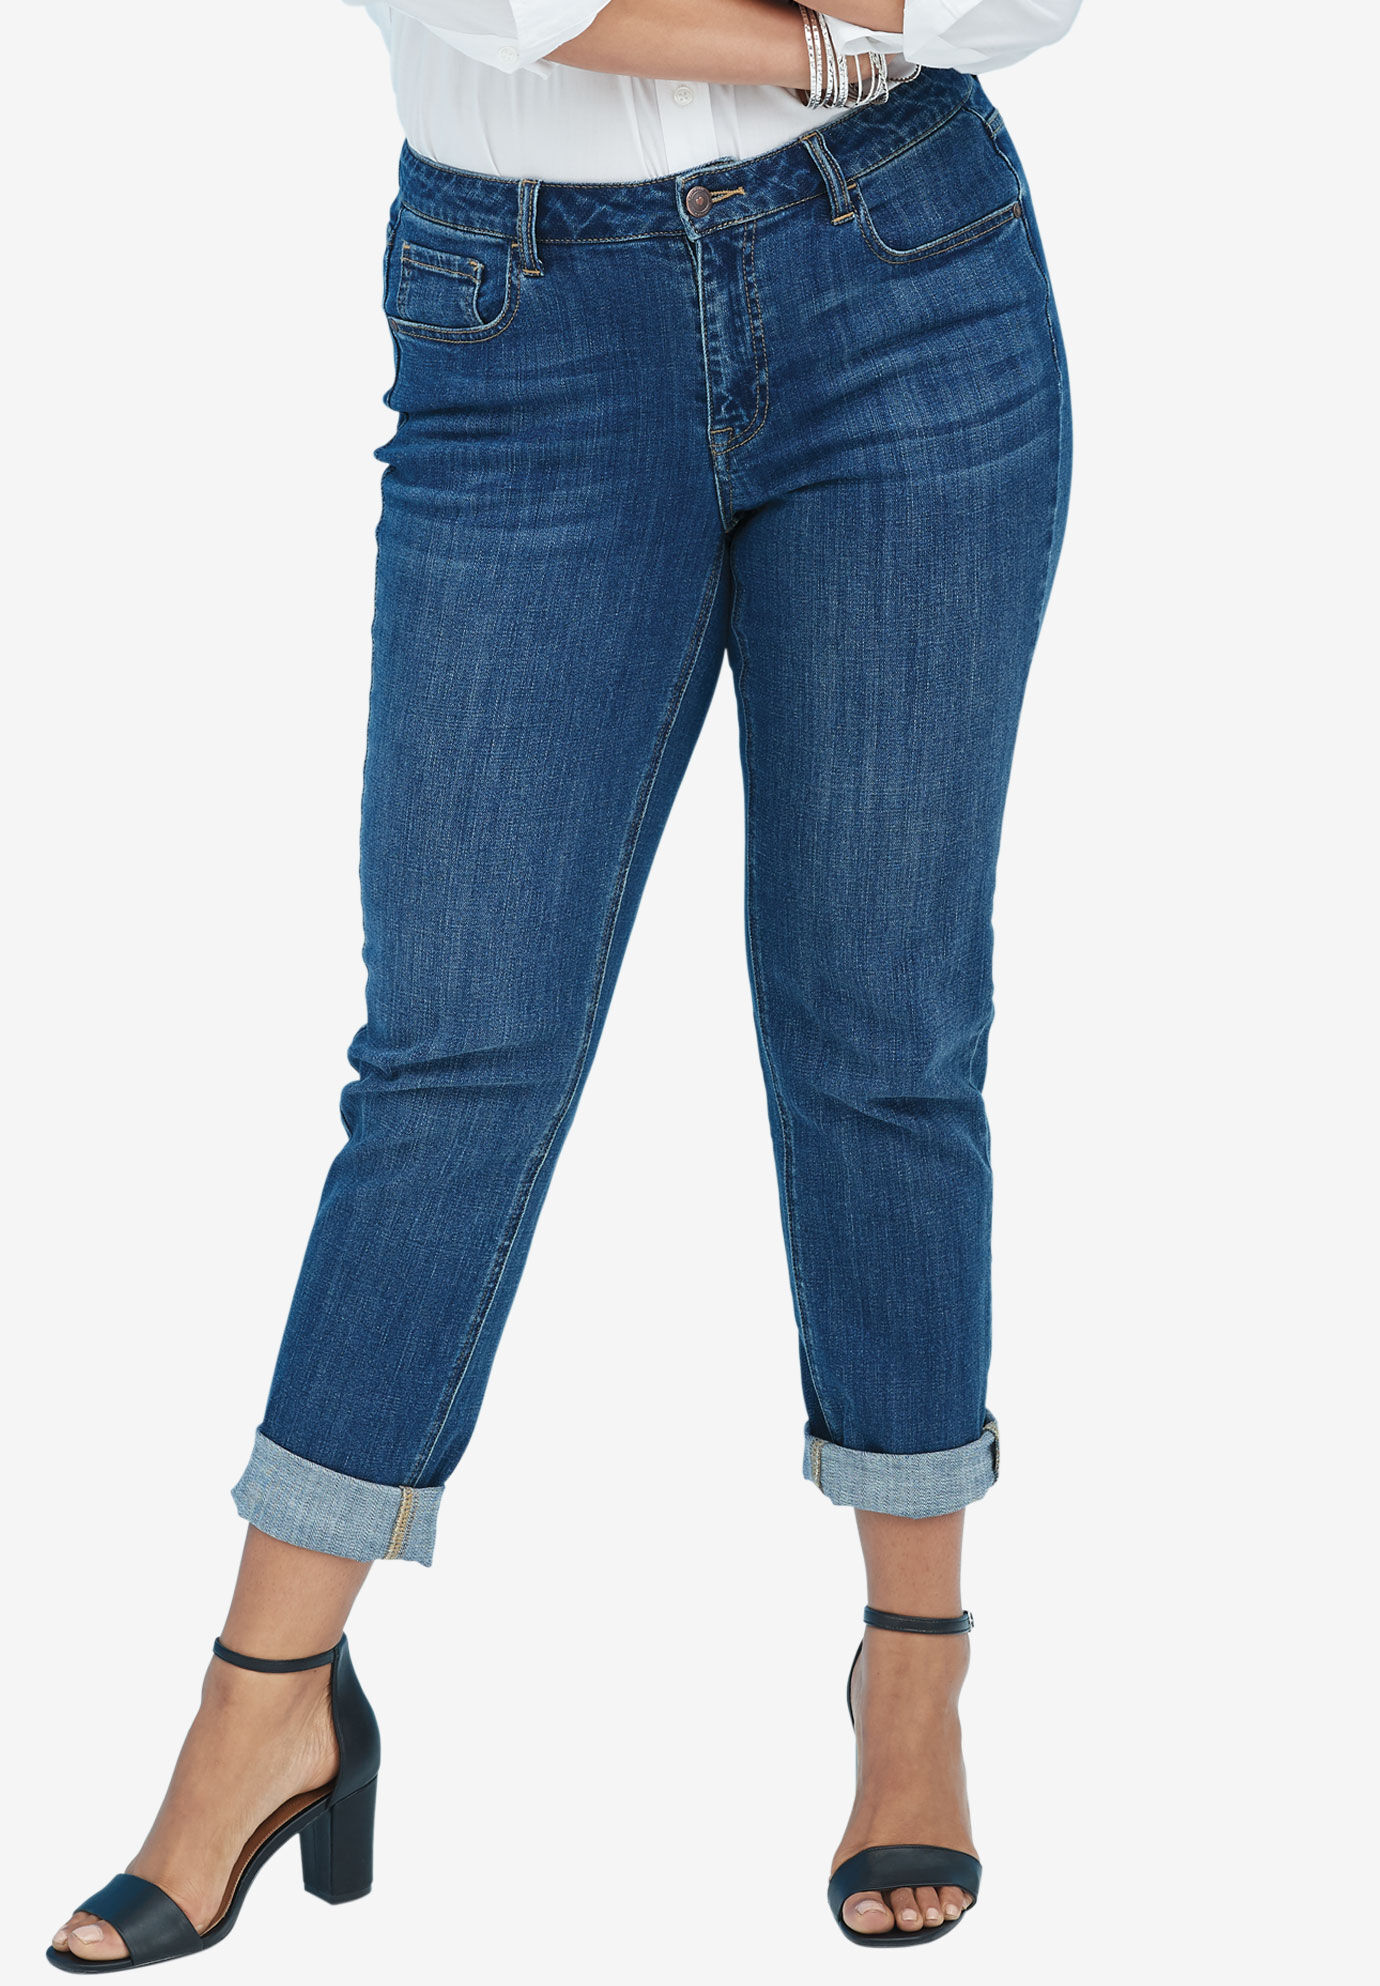 What size jeans have a 24 waist?